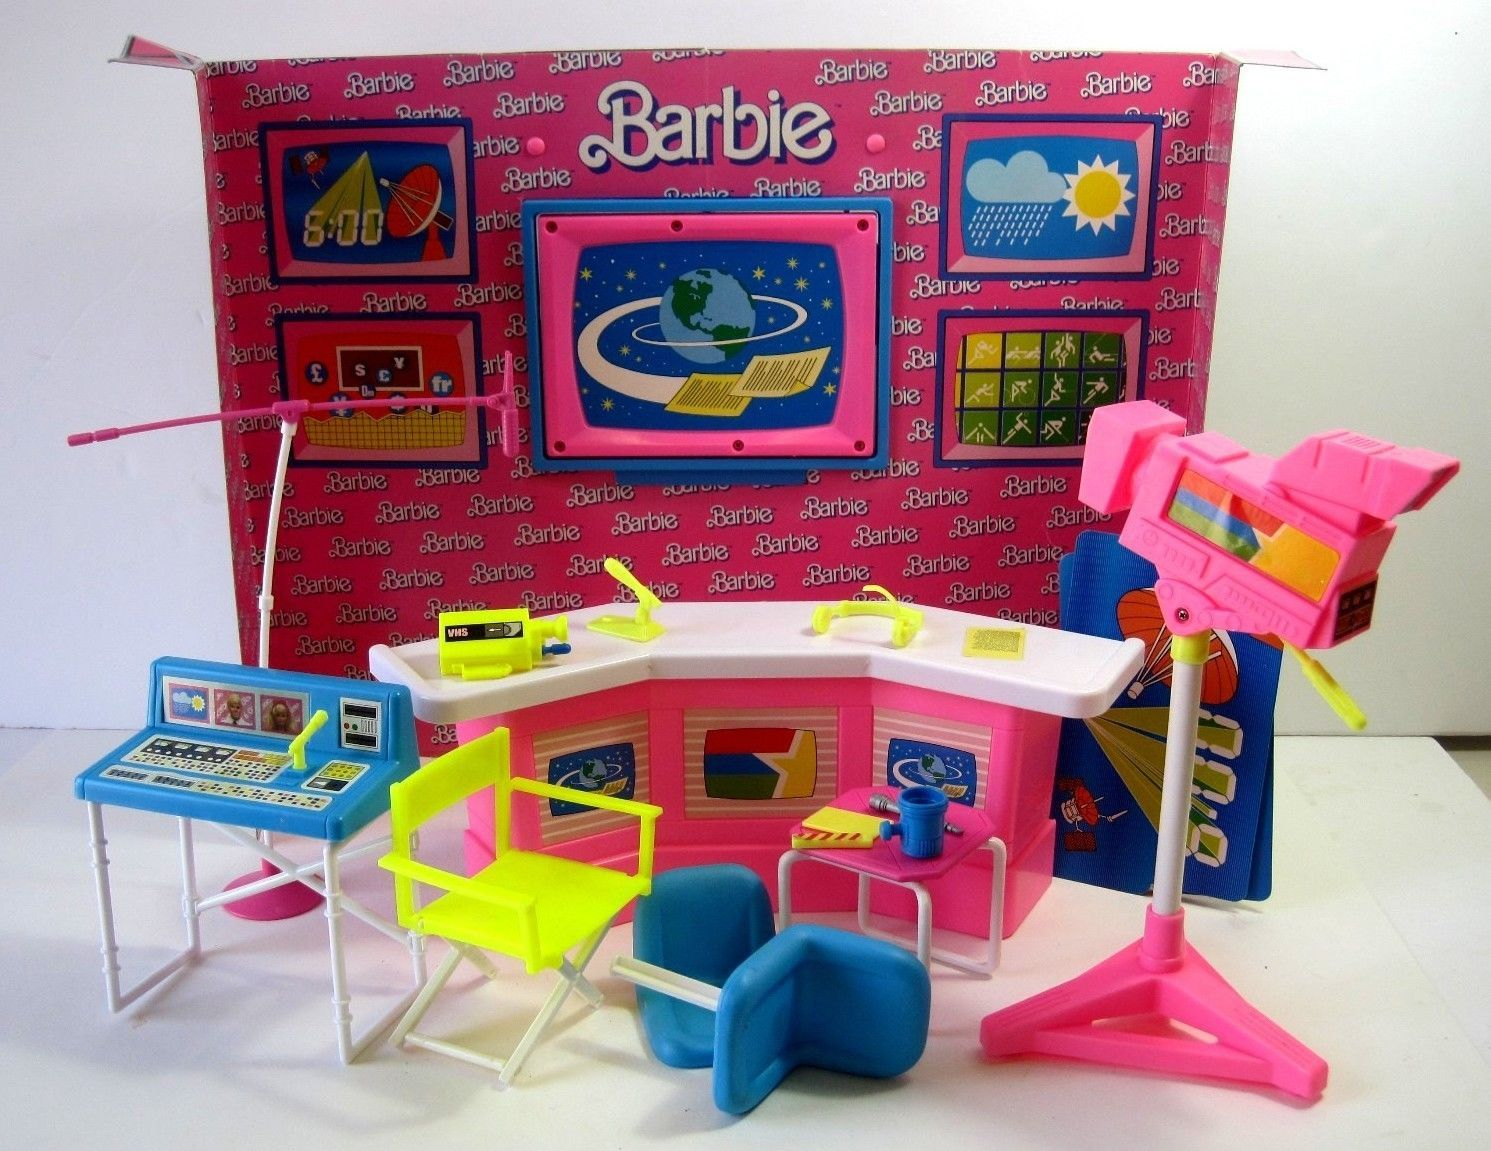 Muebles Kestler - Barbie 6 O Clock News Play Set By Arco Toys 1986 Barbie [mjhdah]https://i.pinimg.com/736x/ed/b0/3f/edb03f187d1183385358603021053830–diorama-ideas-barbie-house.jpg